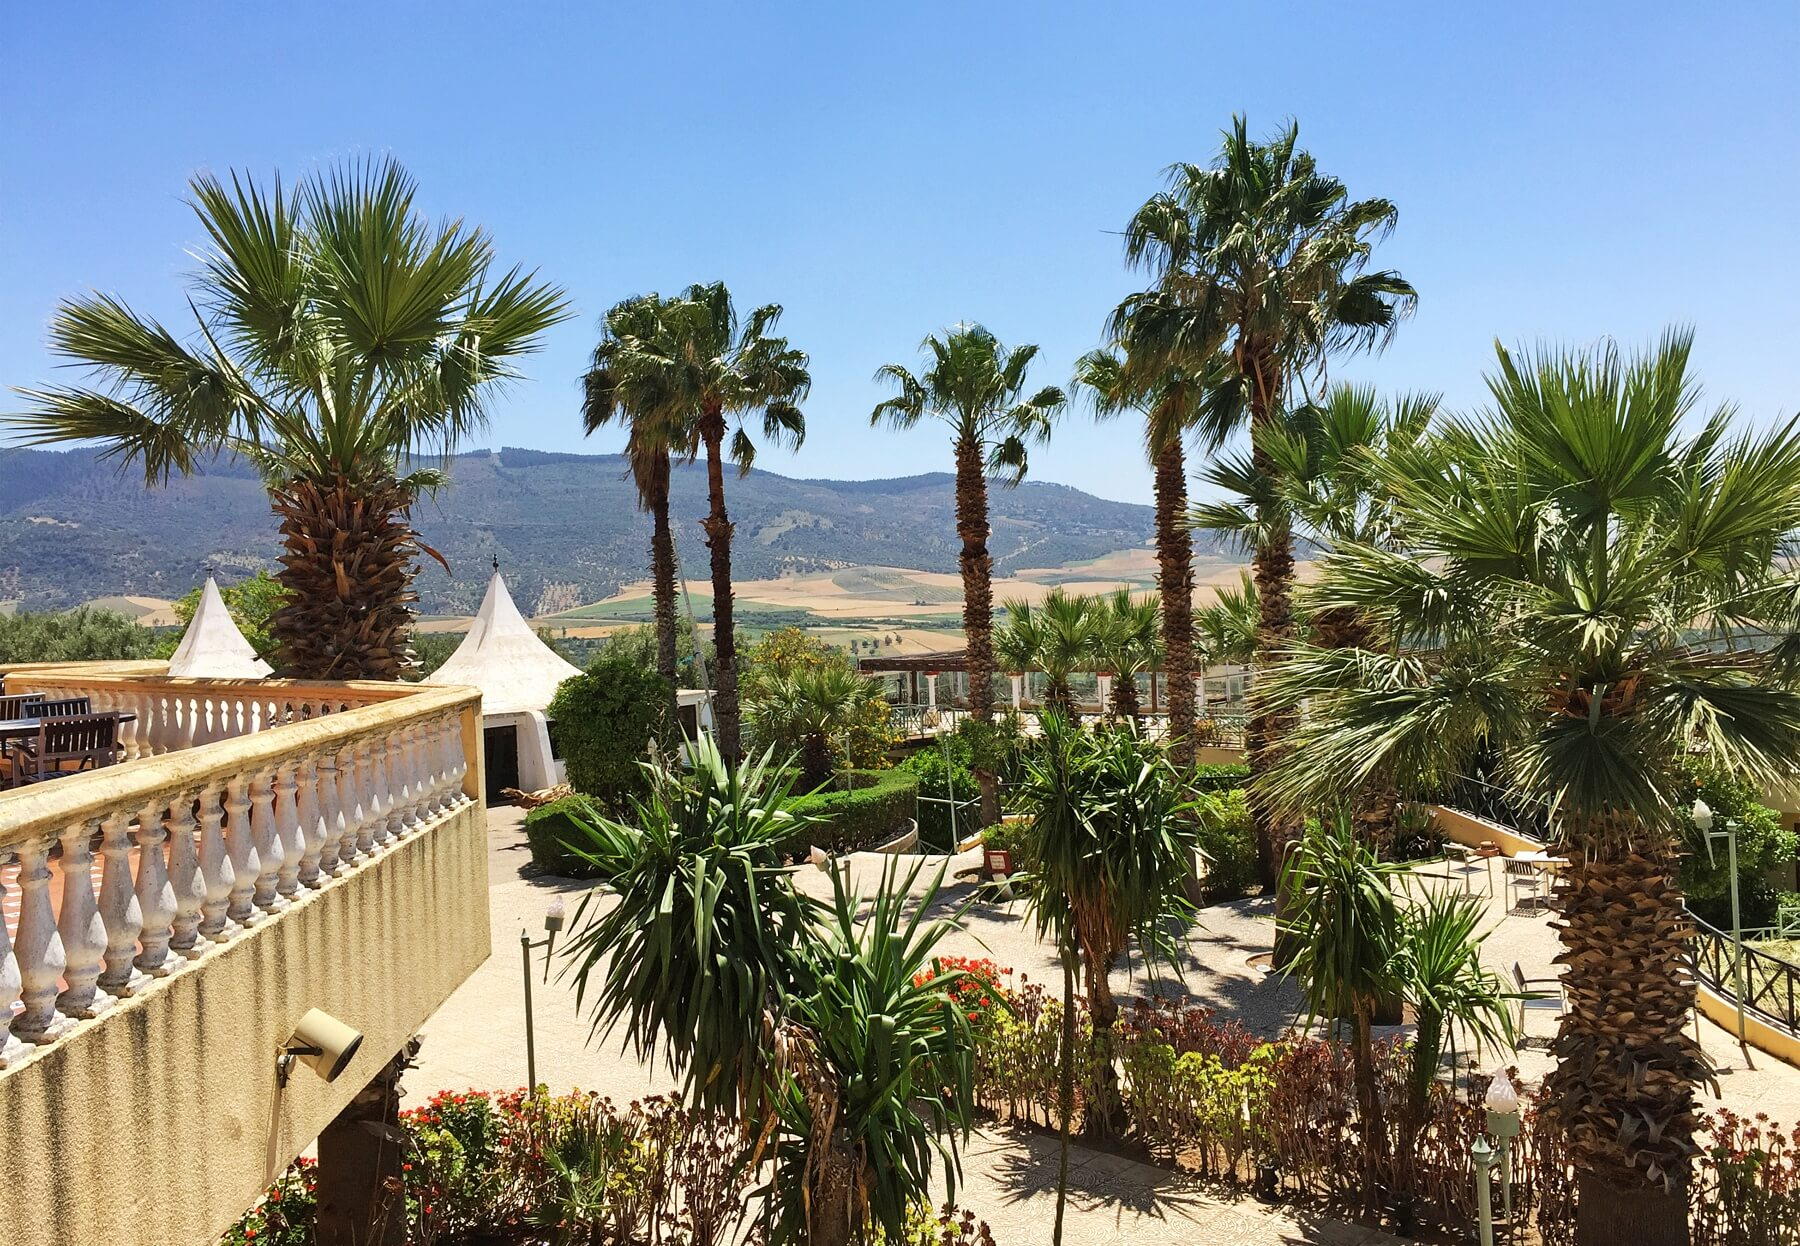 A hotel patio boasts towering palm trees set against the backdrop of the mountains.